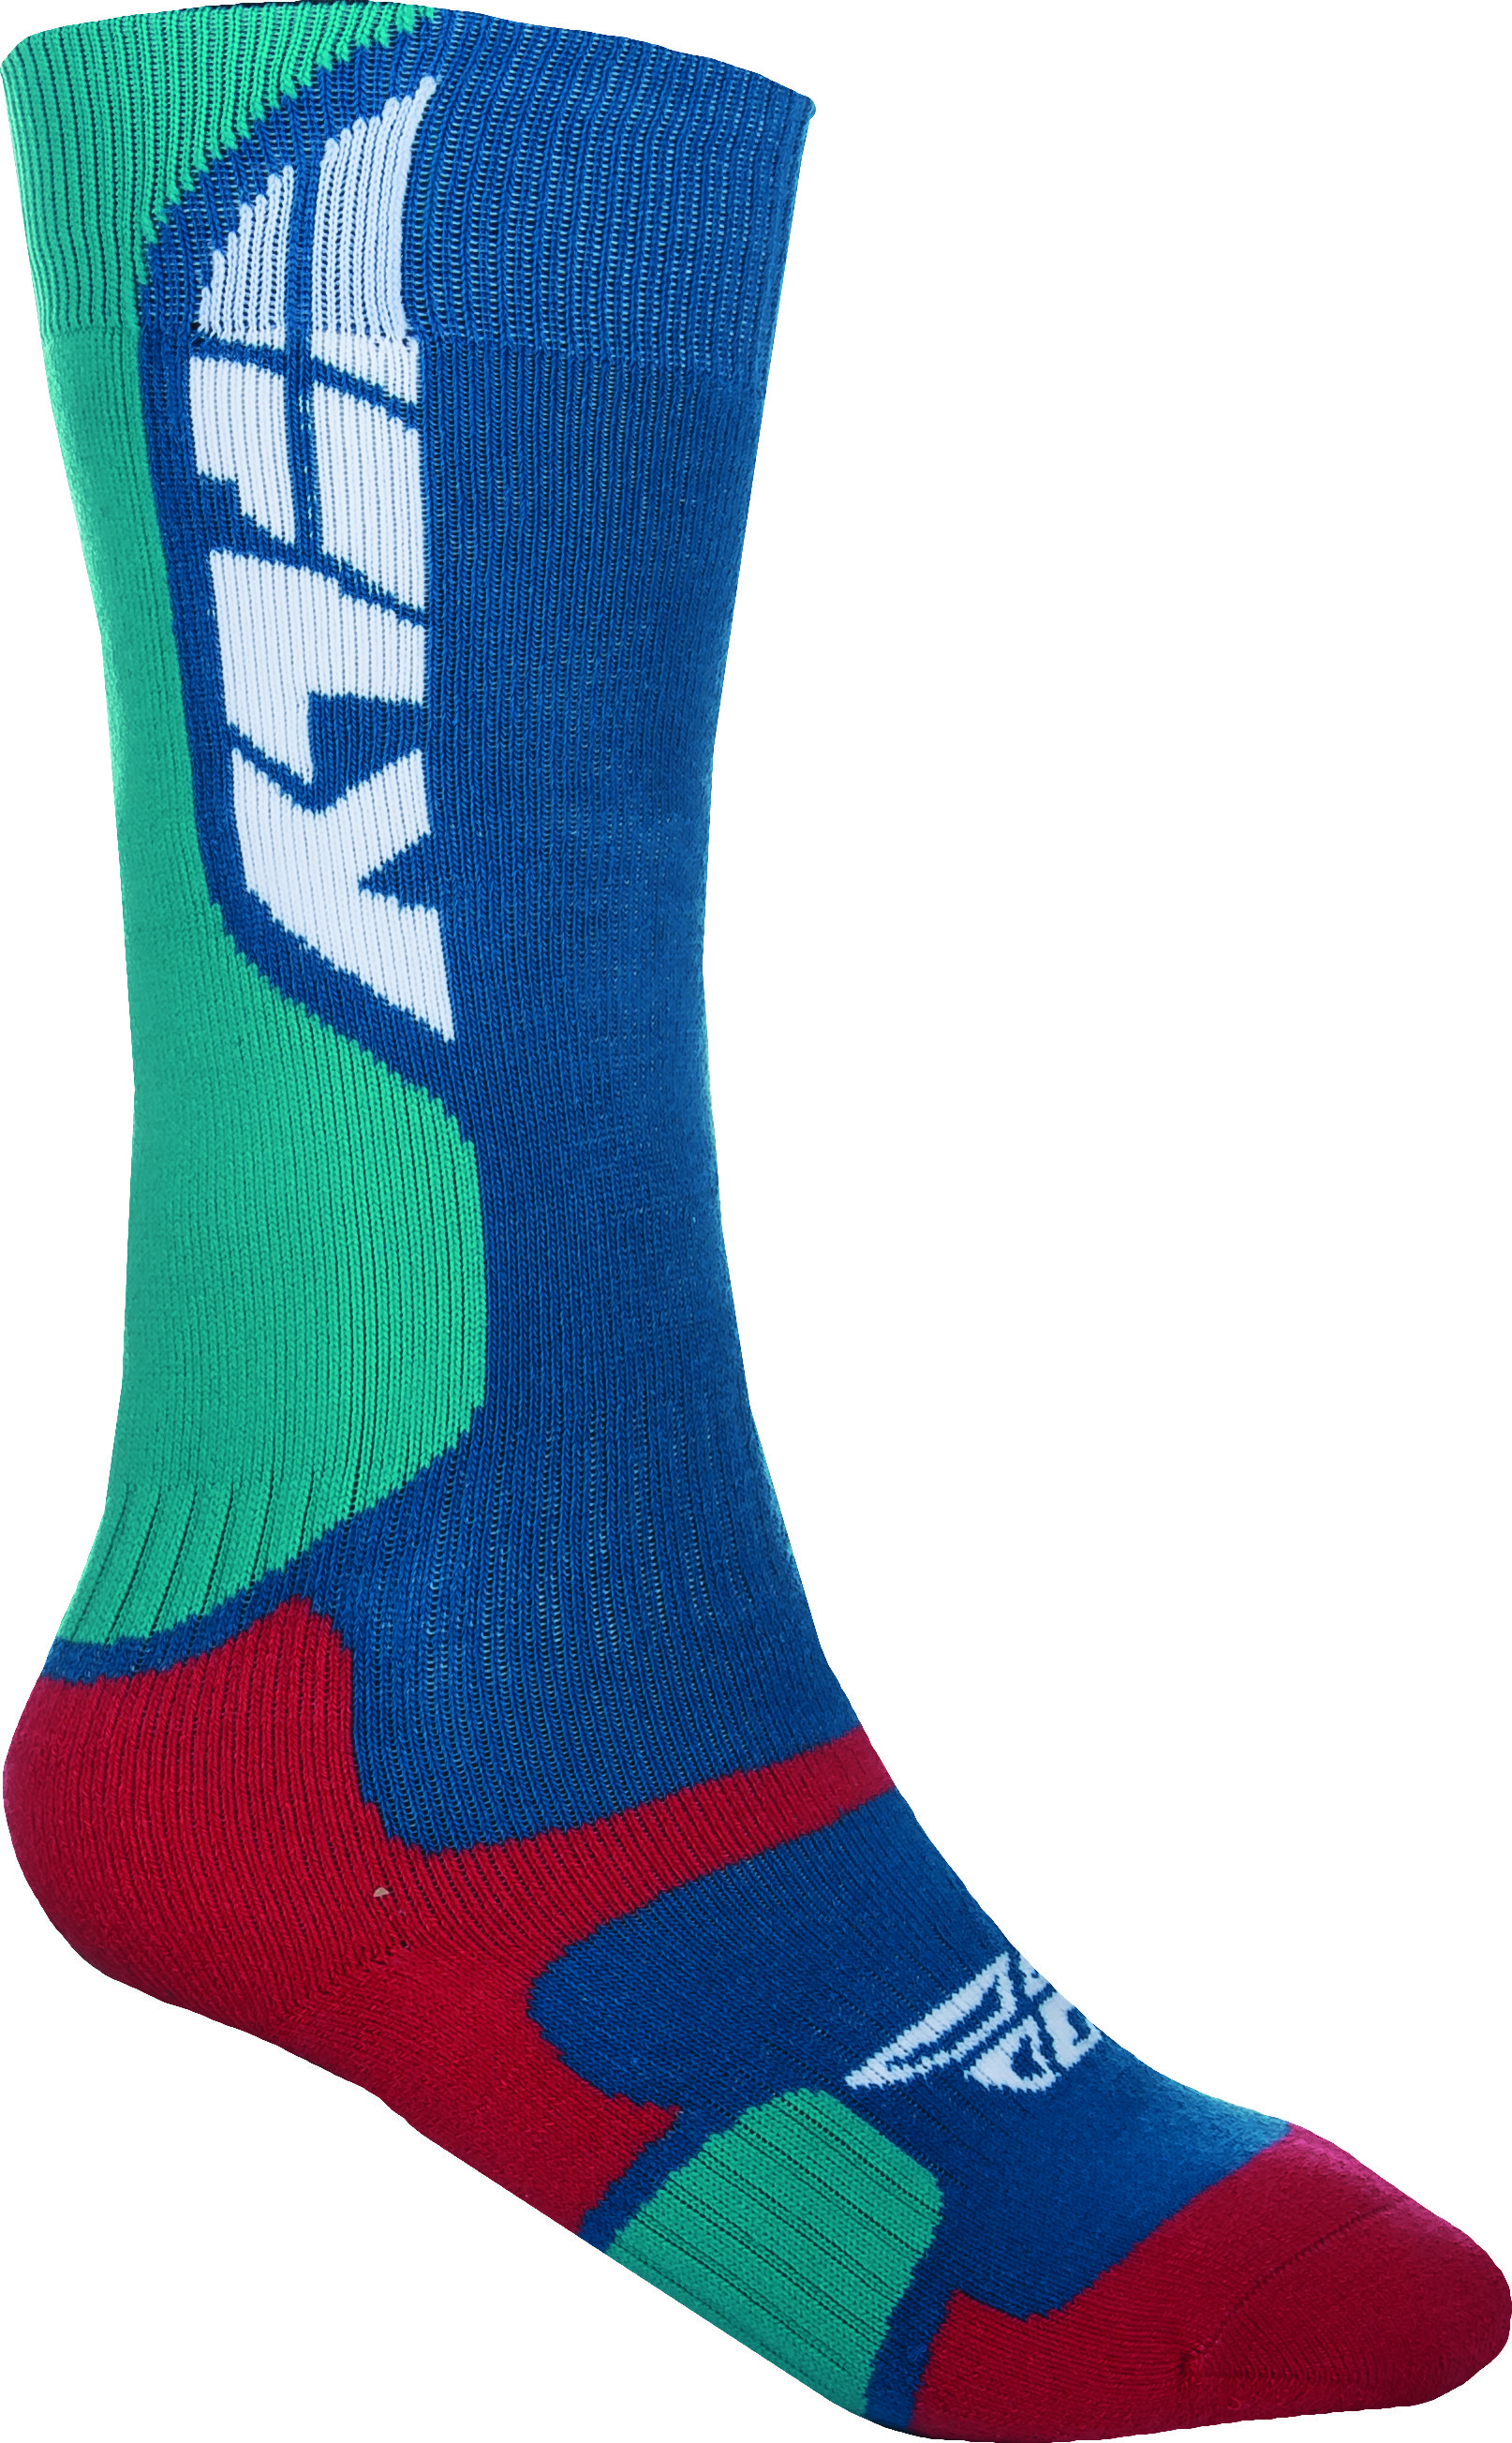 Mx Pro Sock Thick Blue/Red L/X